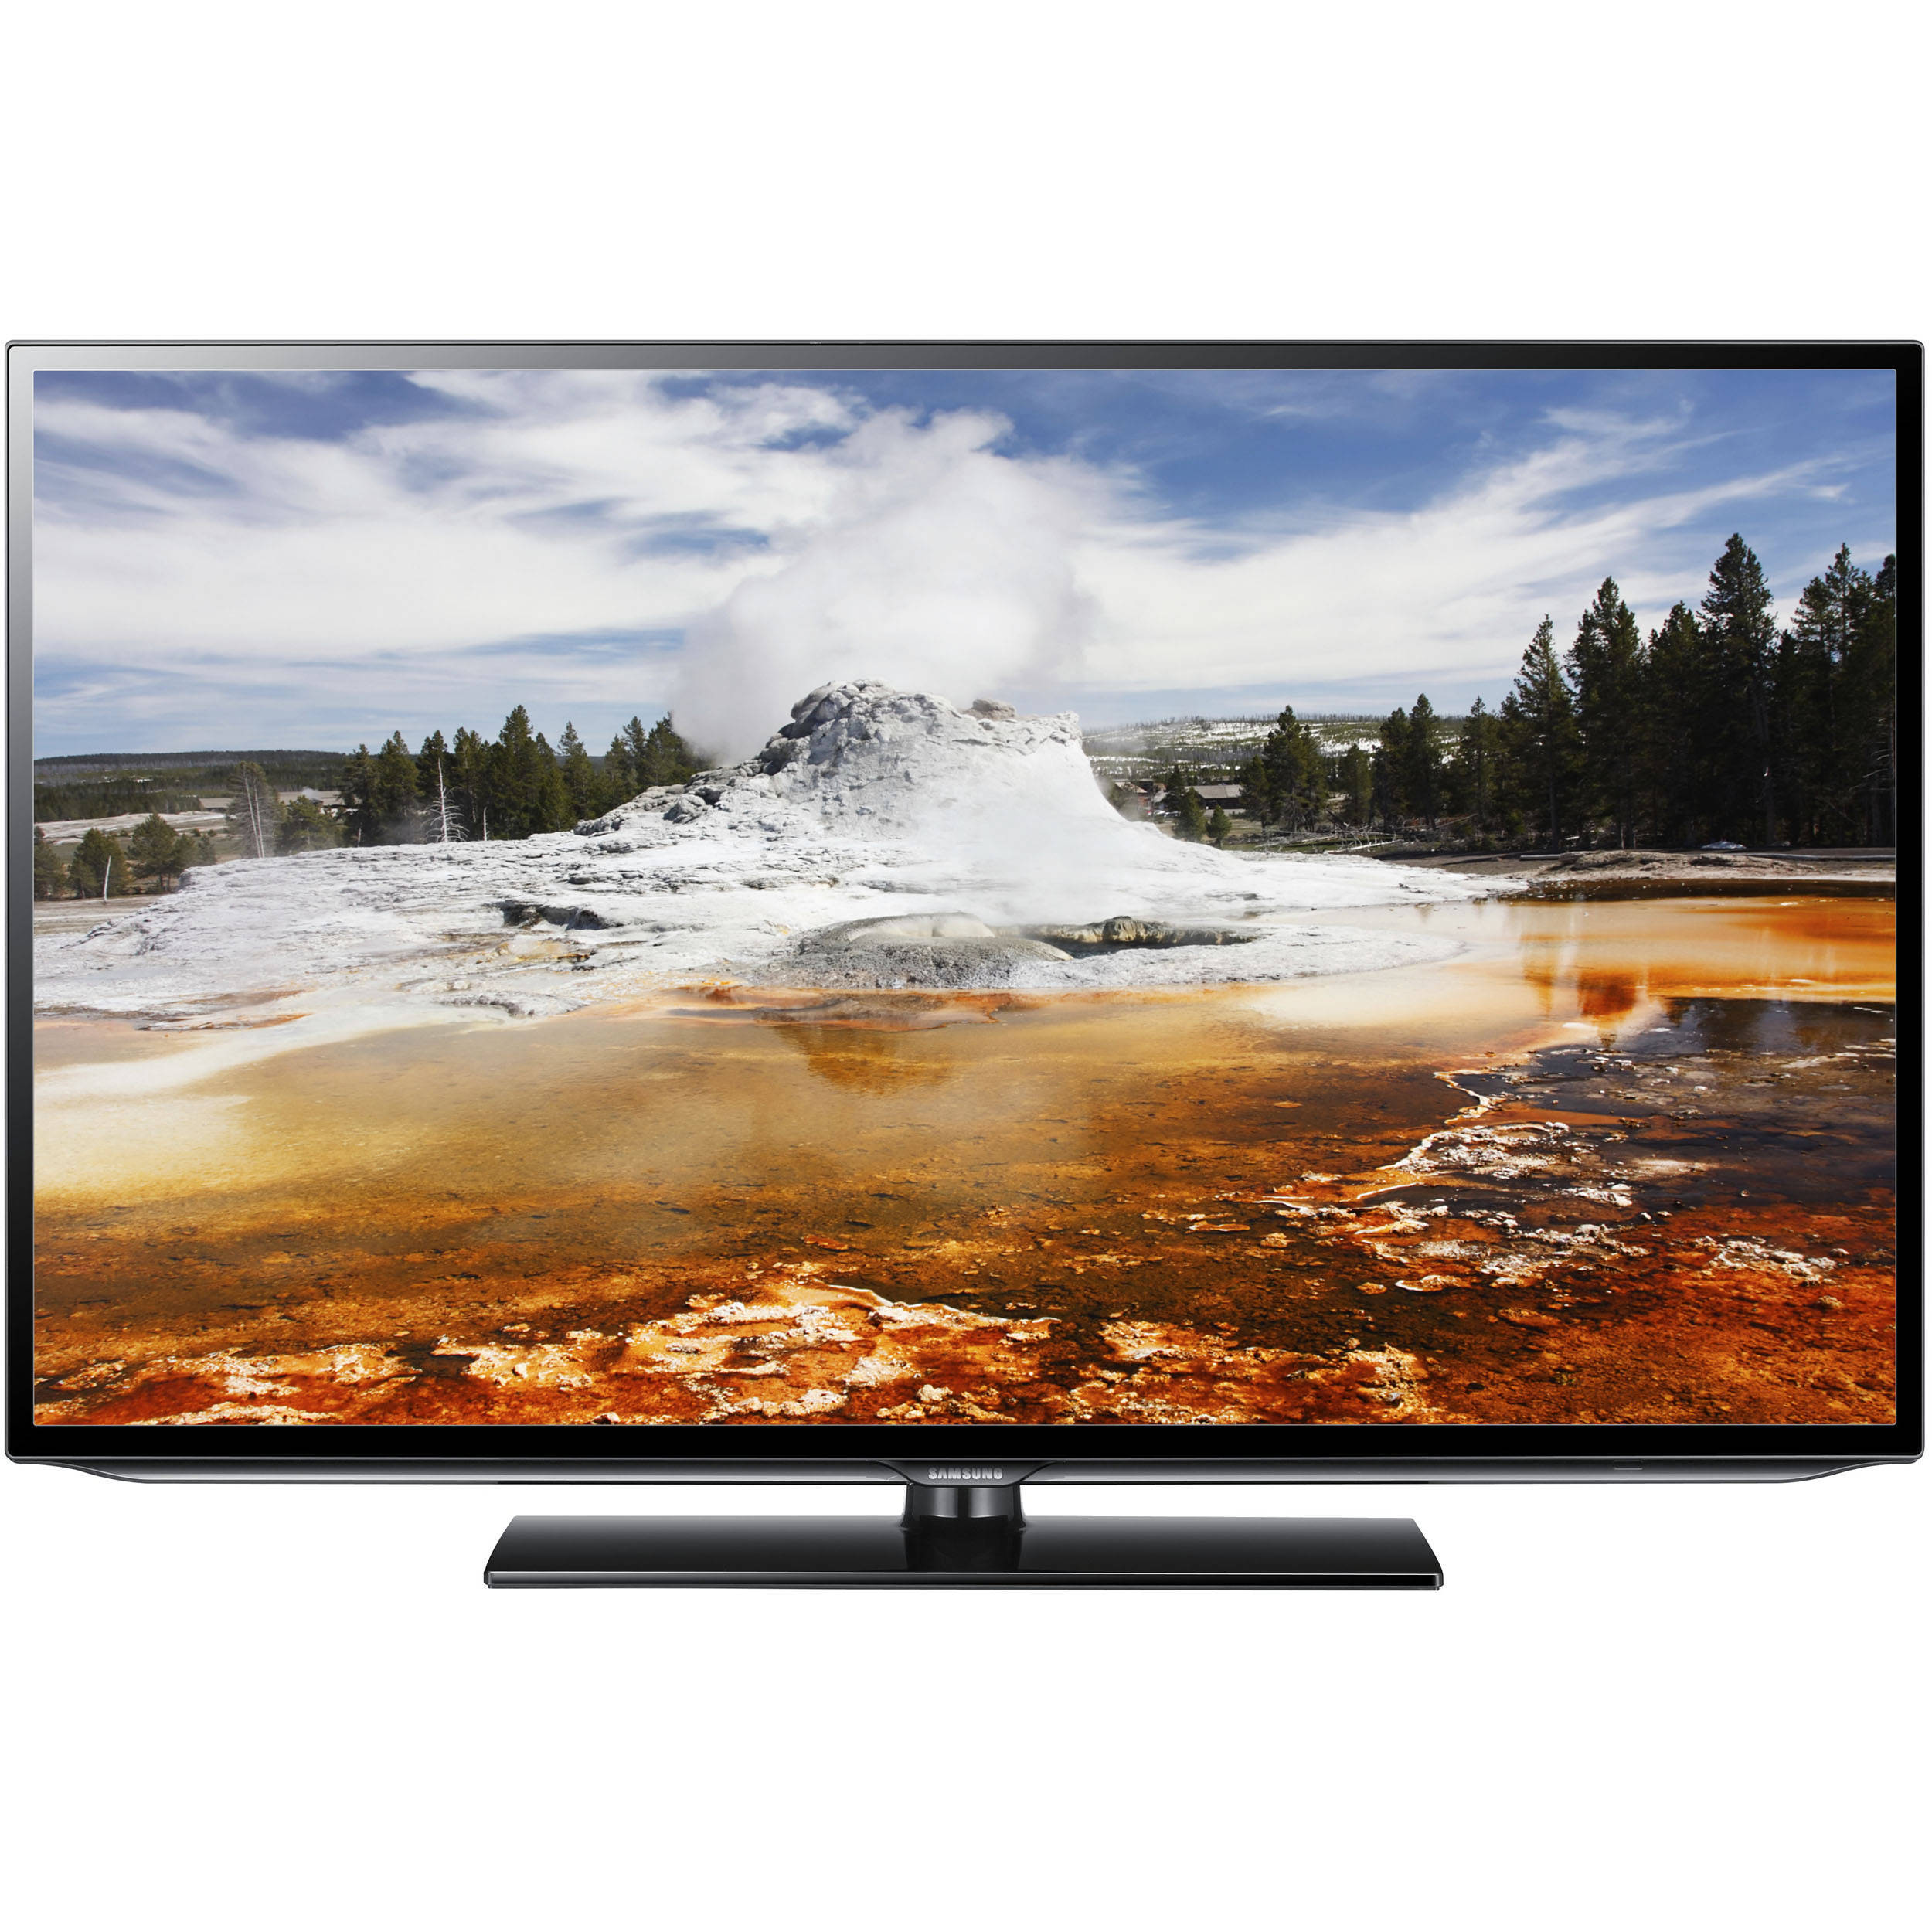 samsung un46eh5000 46 class led hdtv un46eh5000fxza b h. Black Bedroom Furniture Sets. Home Design Ideas